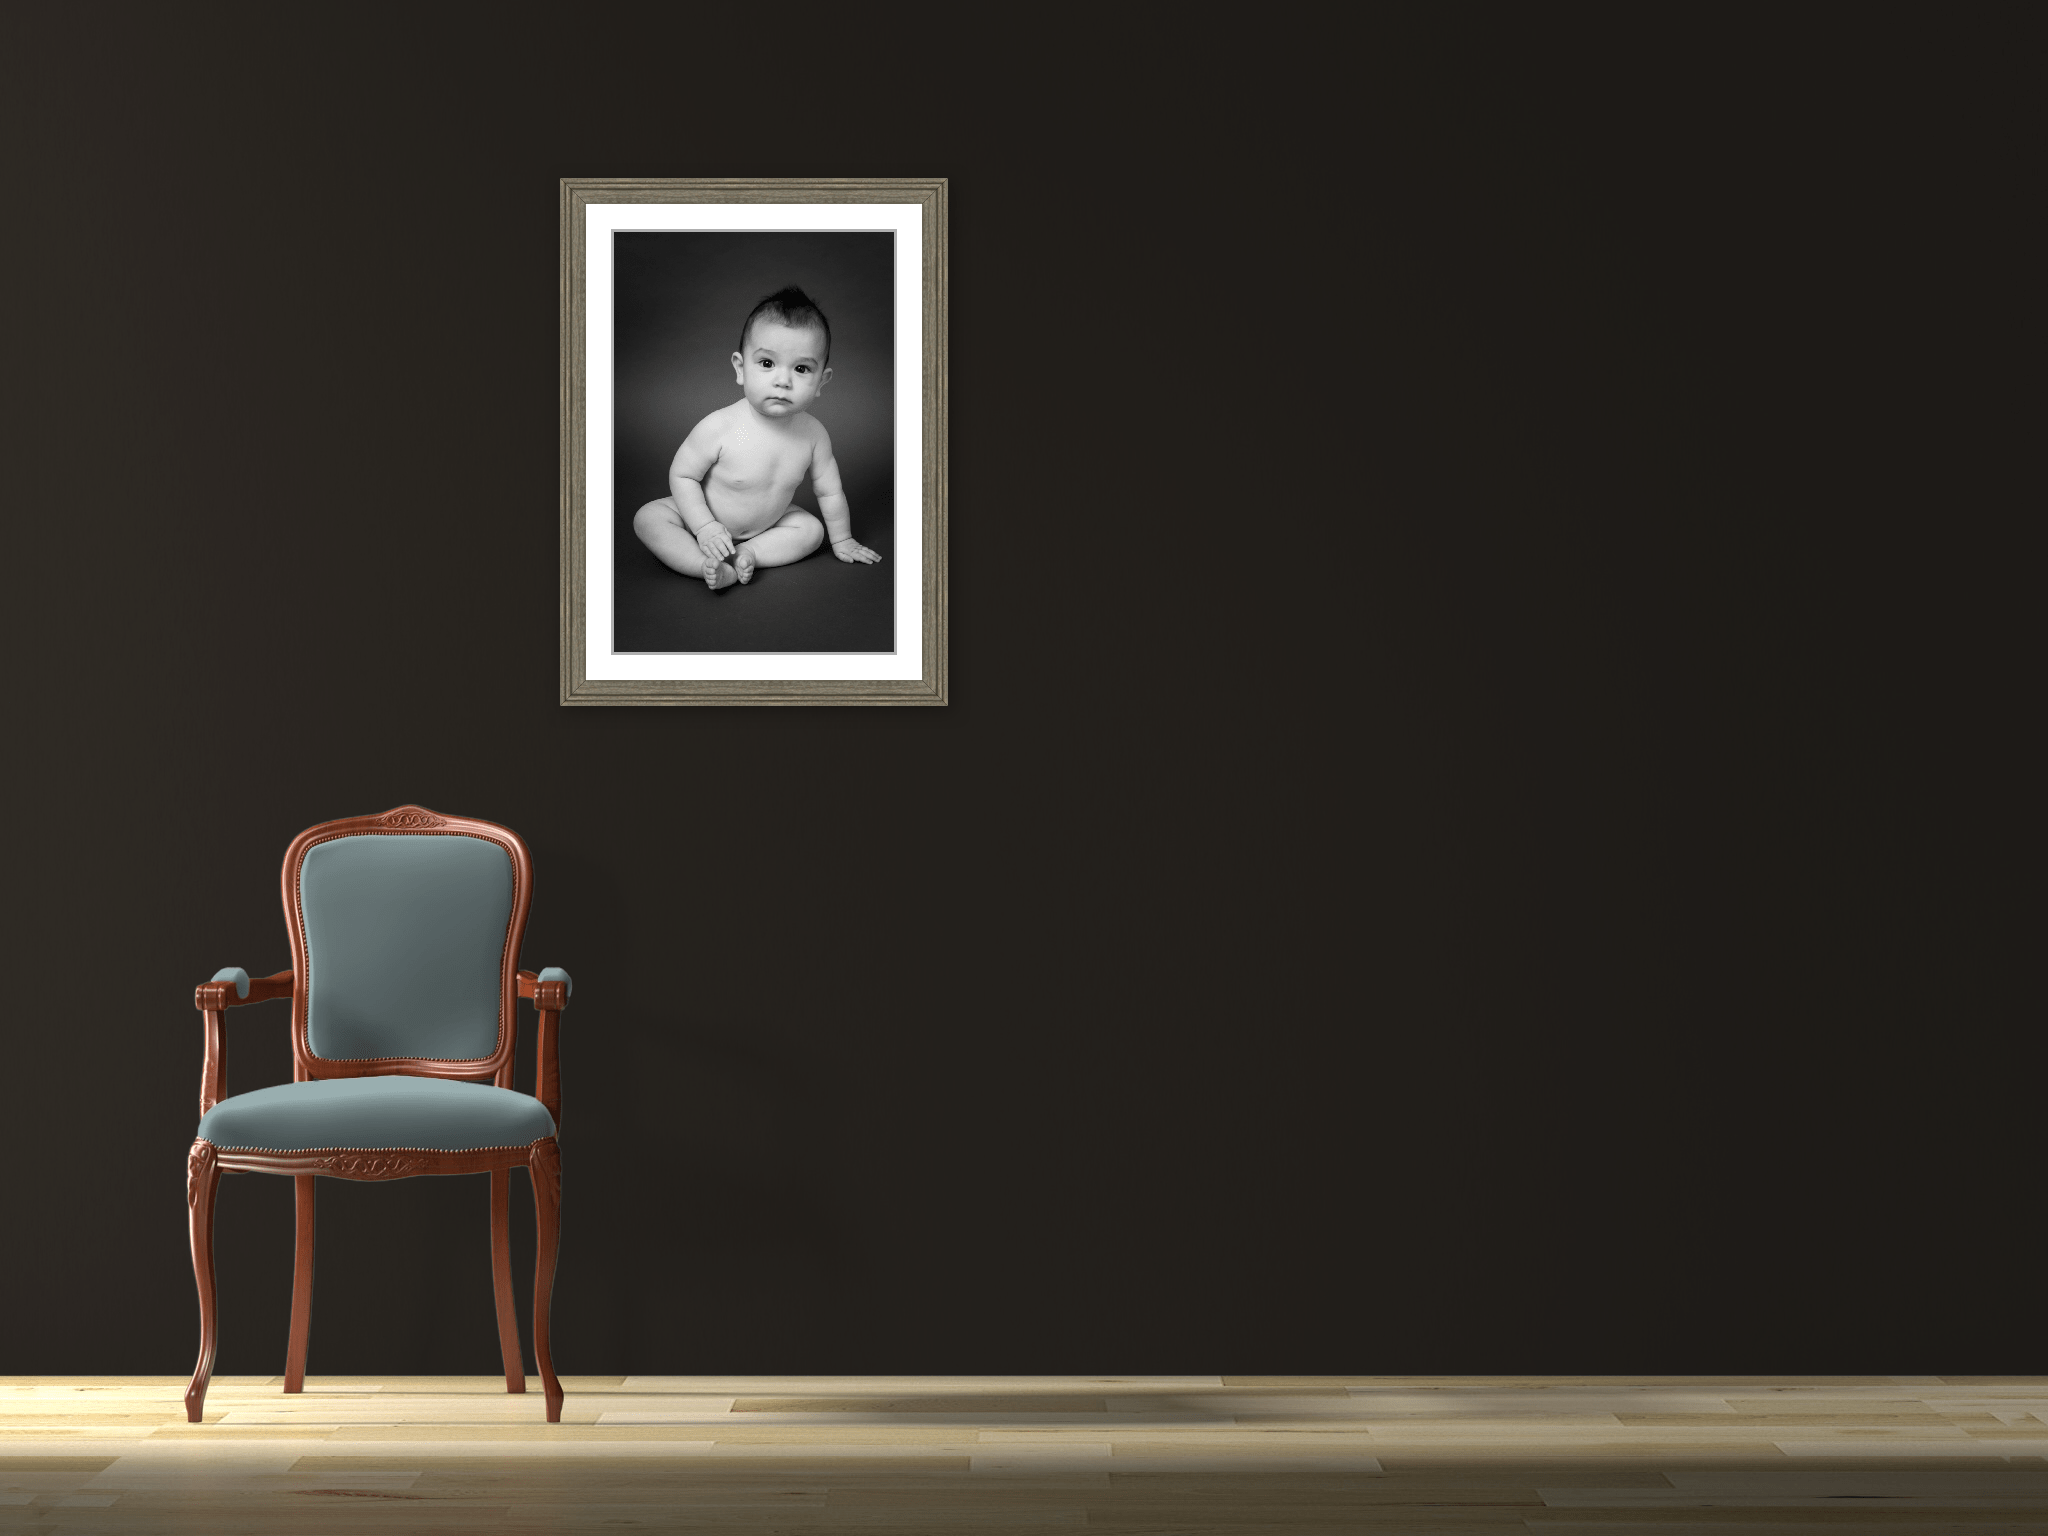 framed baby portrait sitting up boy black and white